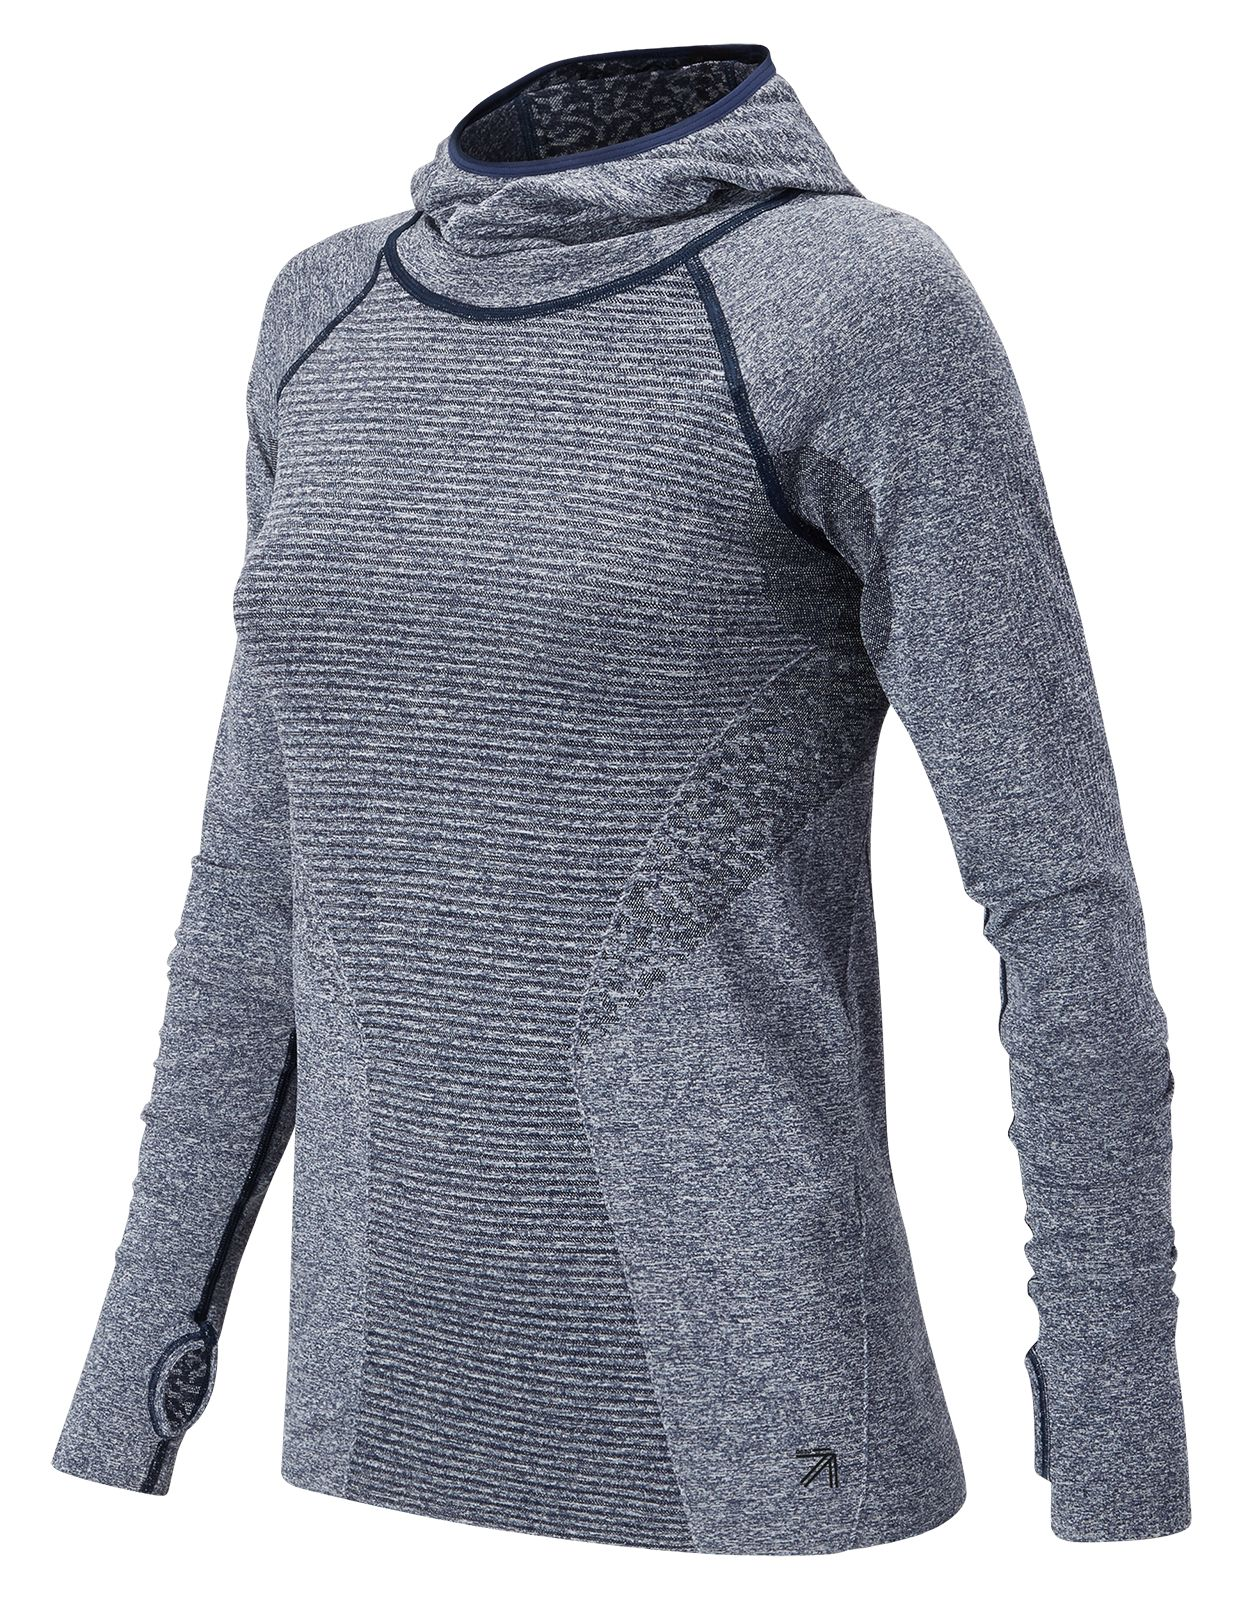 NB J.Crew M4M Seamless Hooded Pullover, Navy